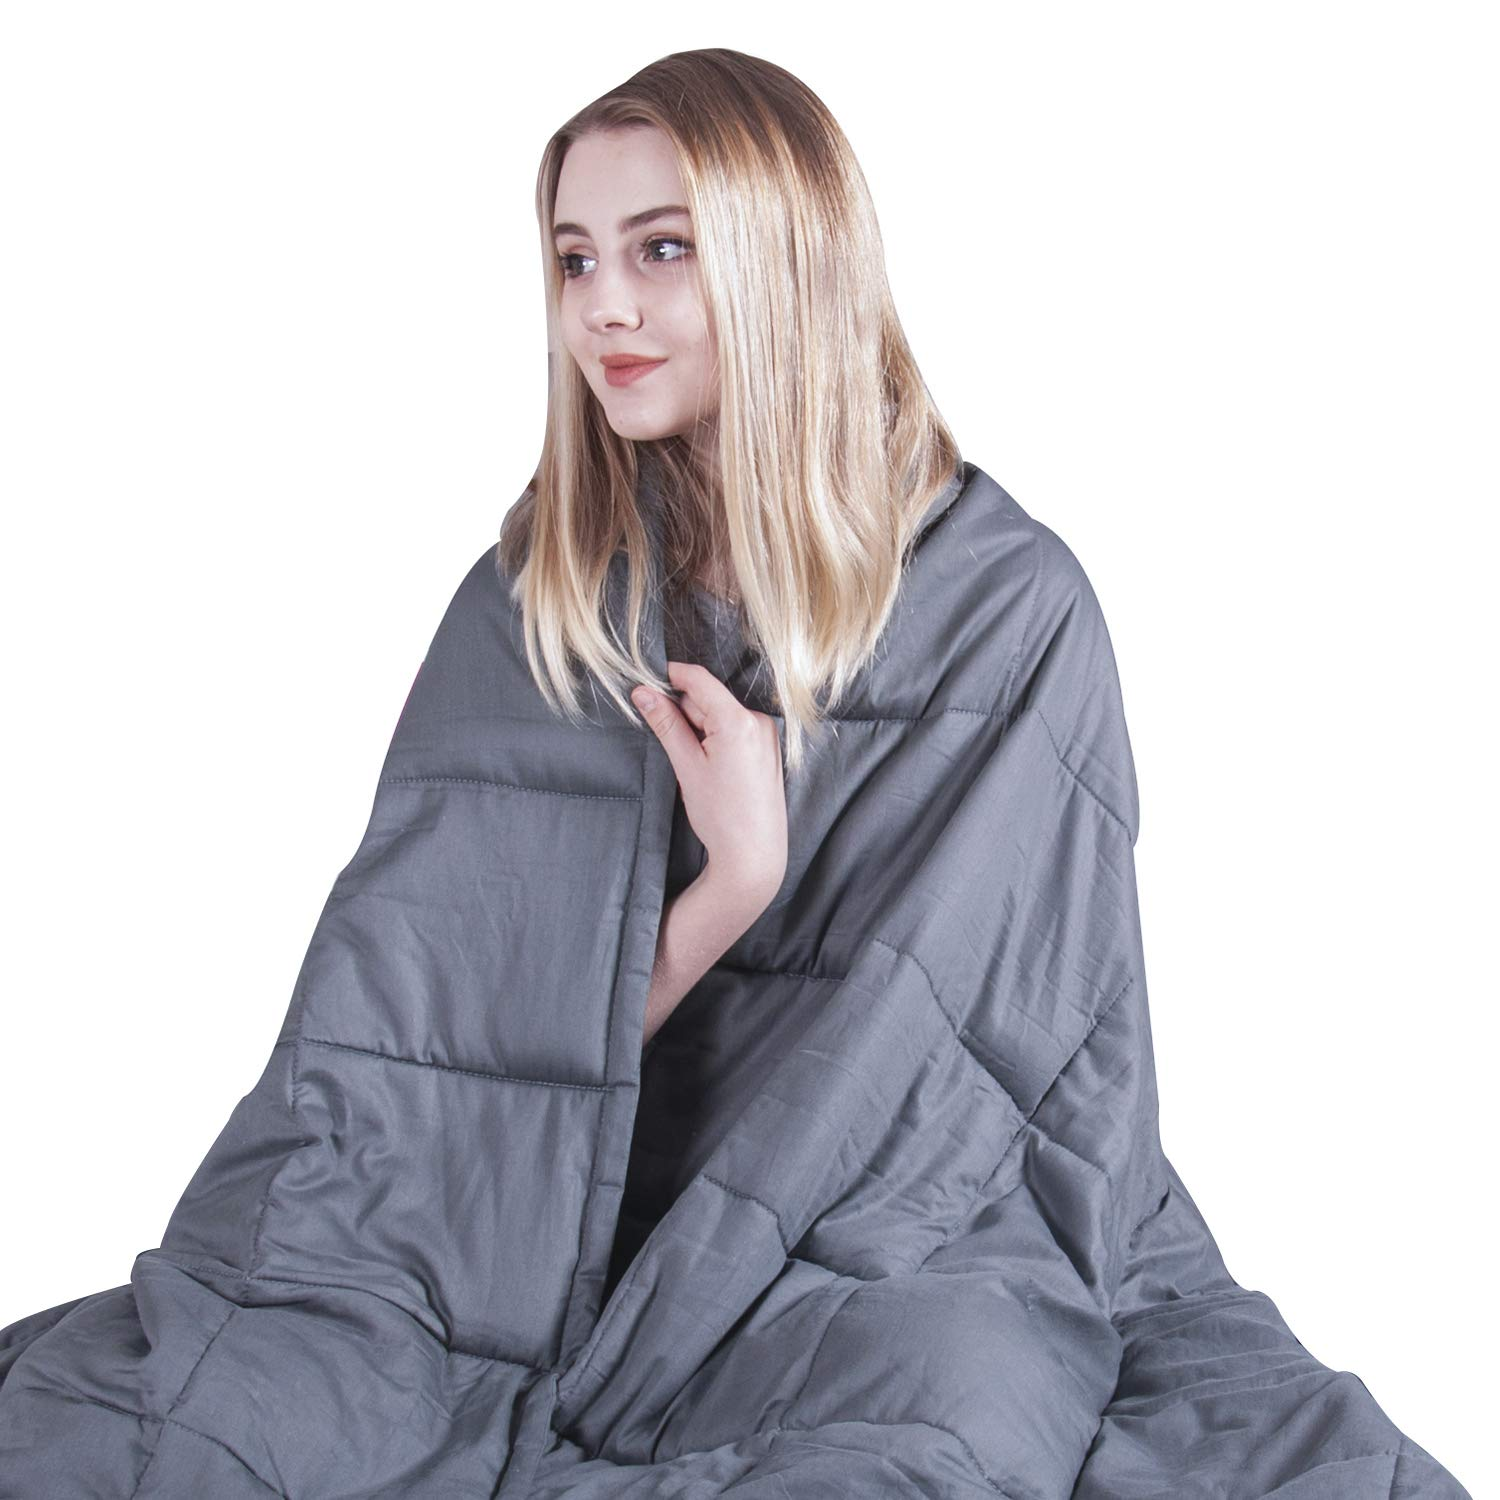 COMHO Weighted Blanket Cooling Cotton Heavy Blanket 20 lbs,60''x80'',Queen Size by COMHO